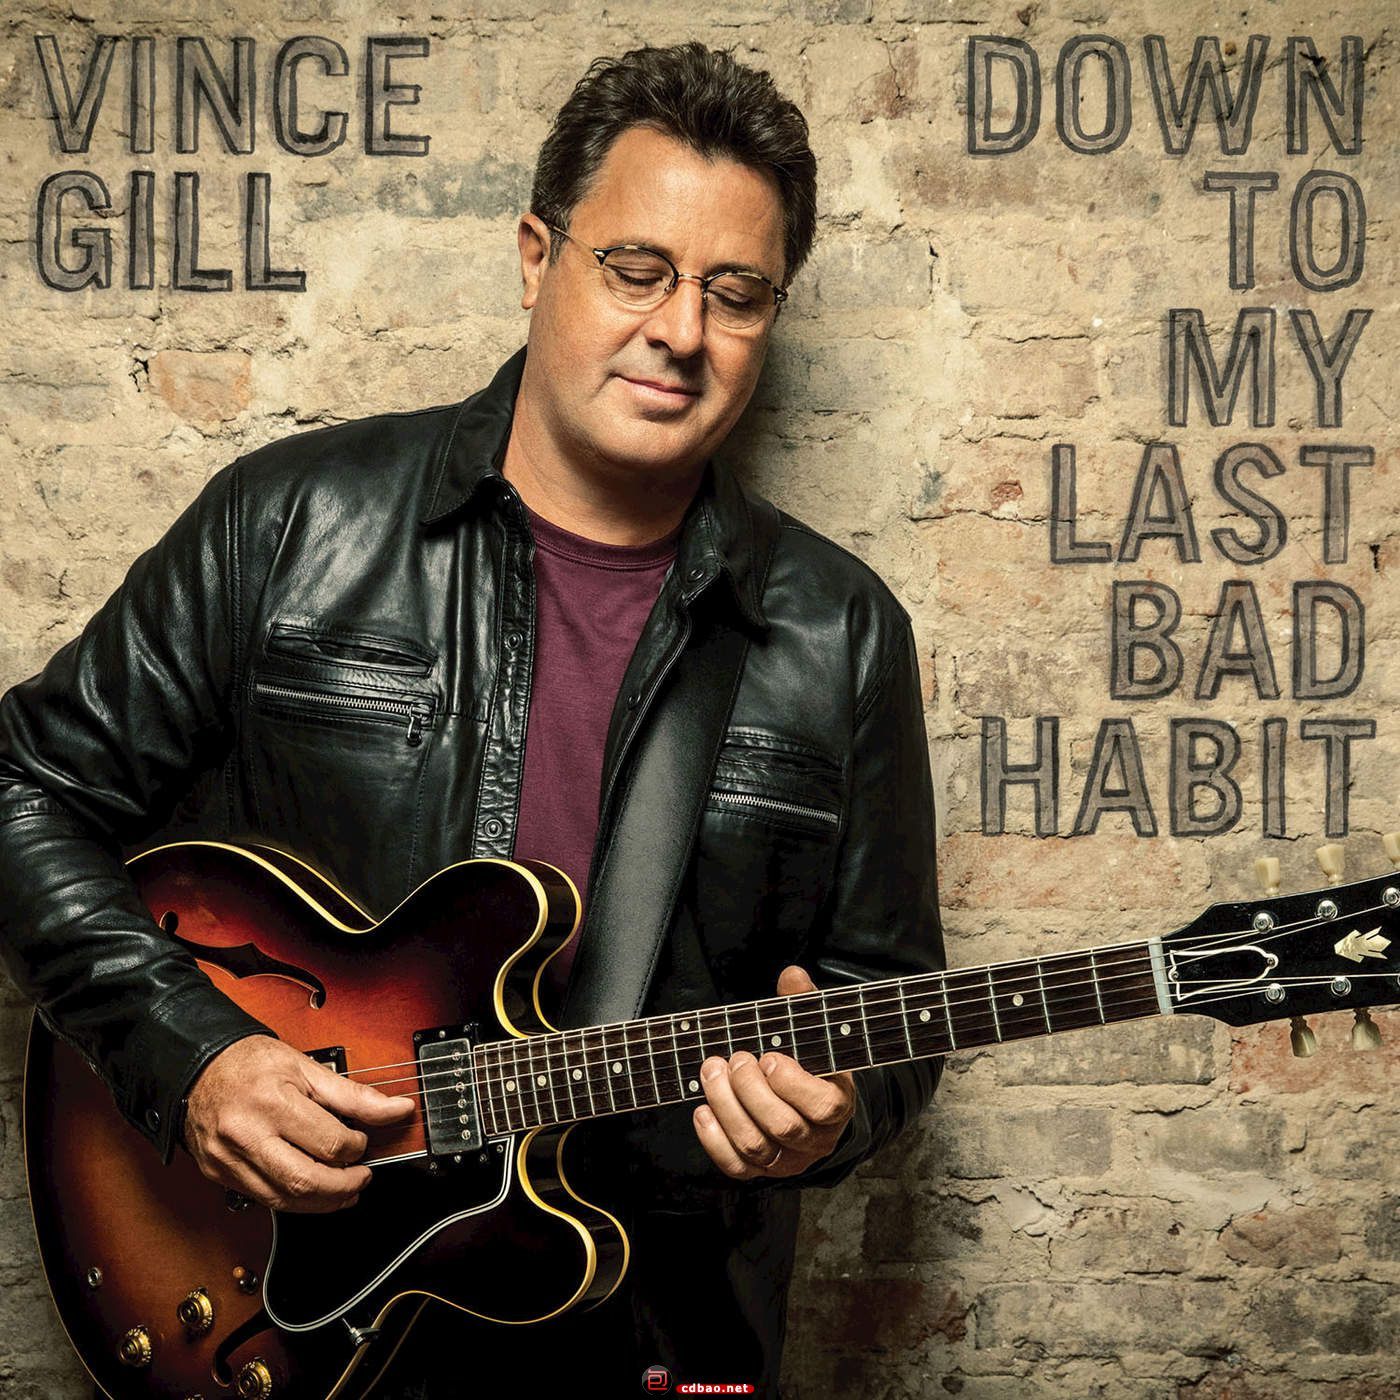 Vince-Gill-Down-to-My-Last-Bad-Habit.jpg